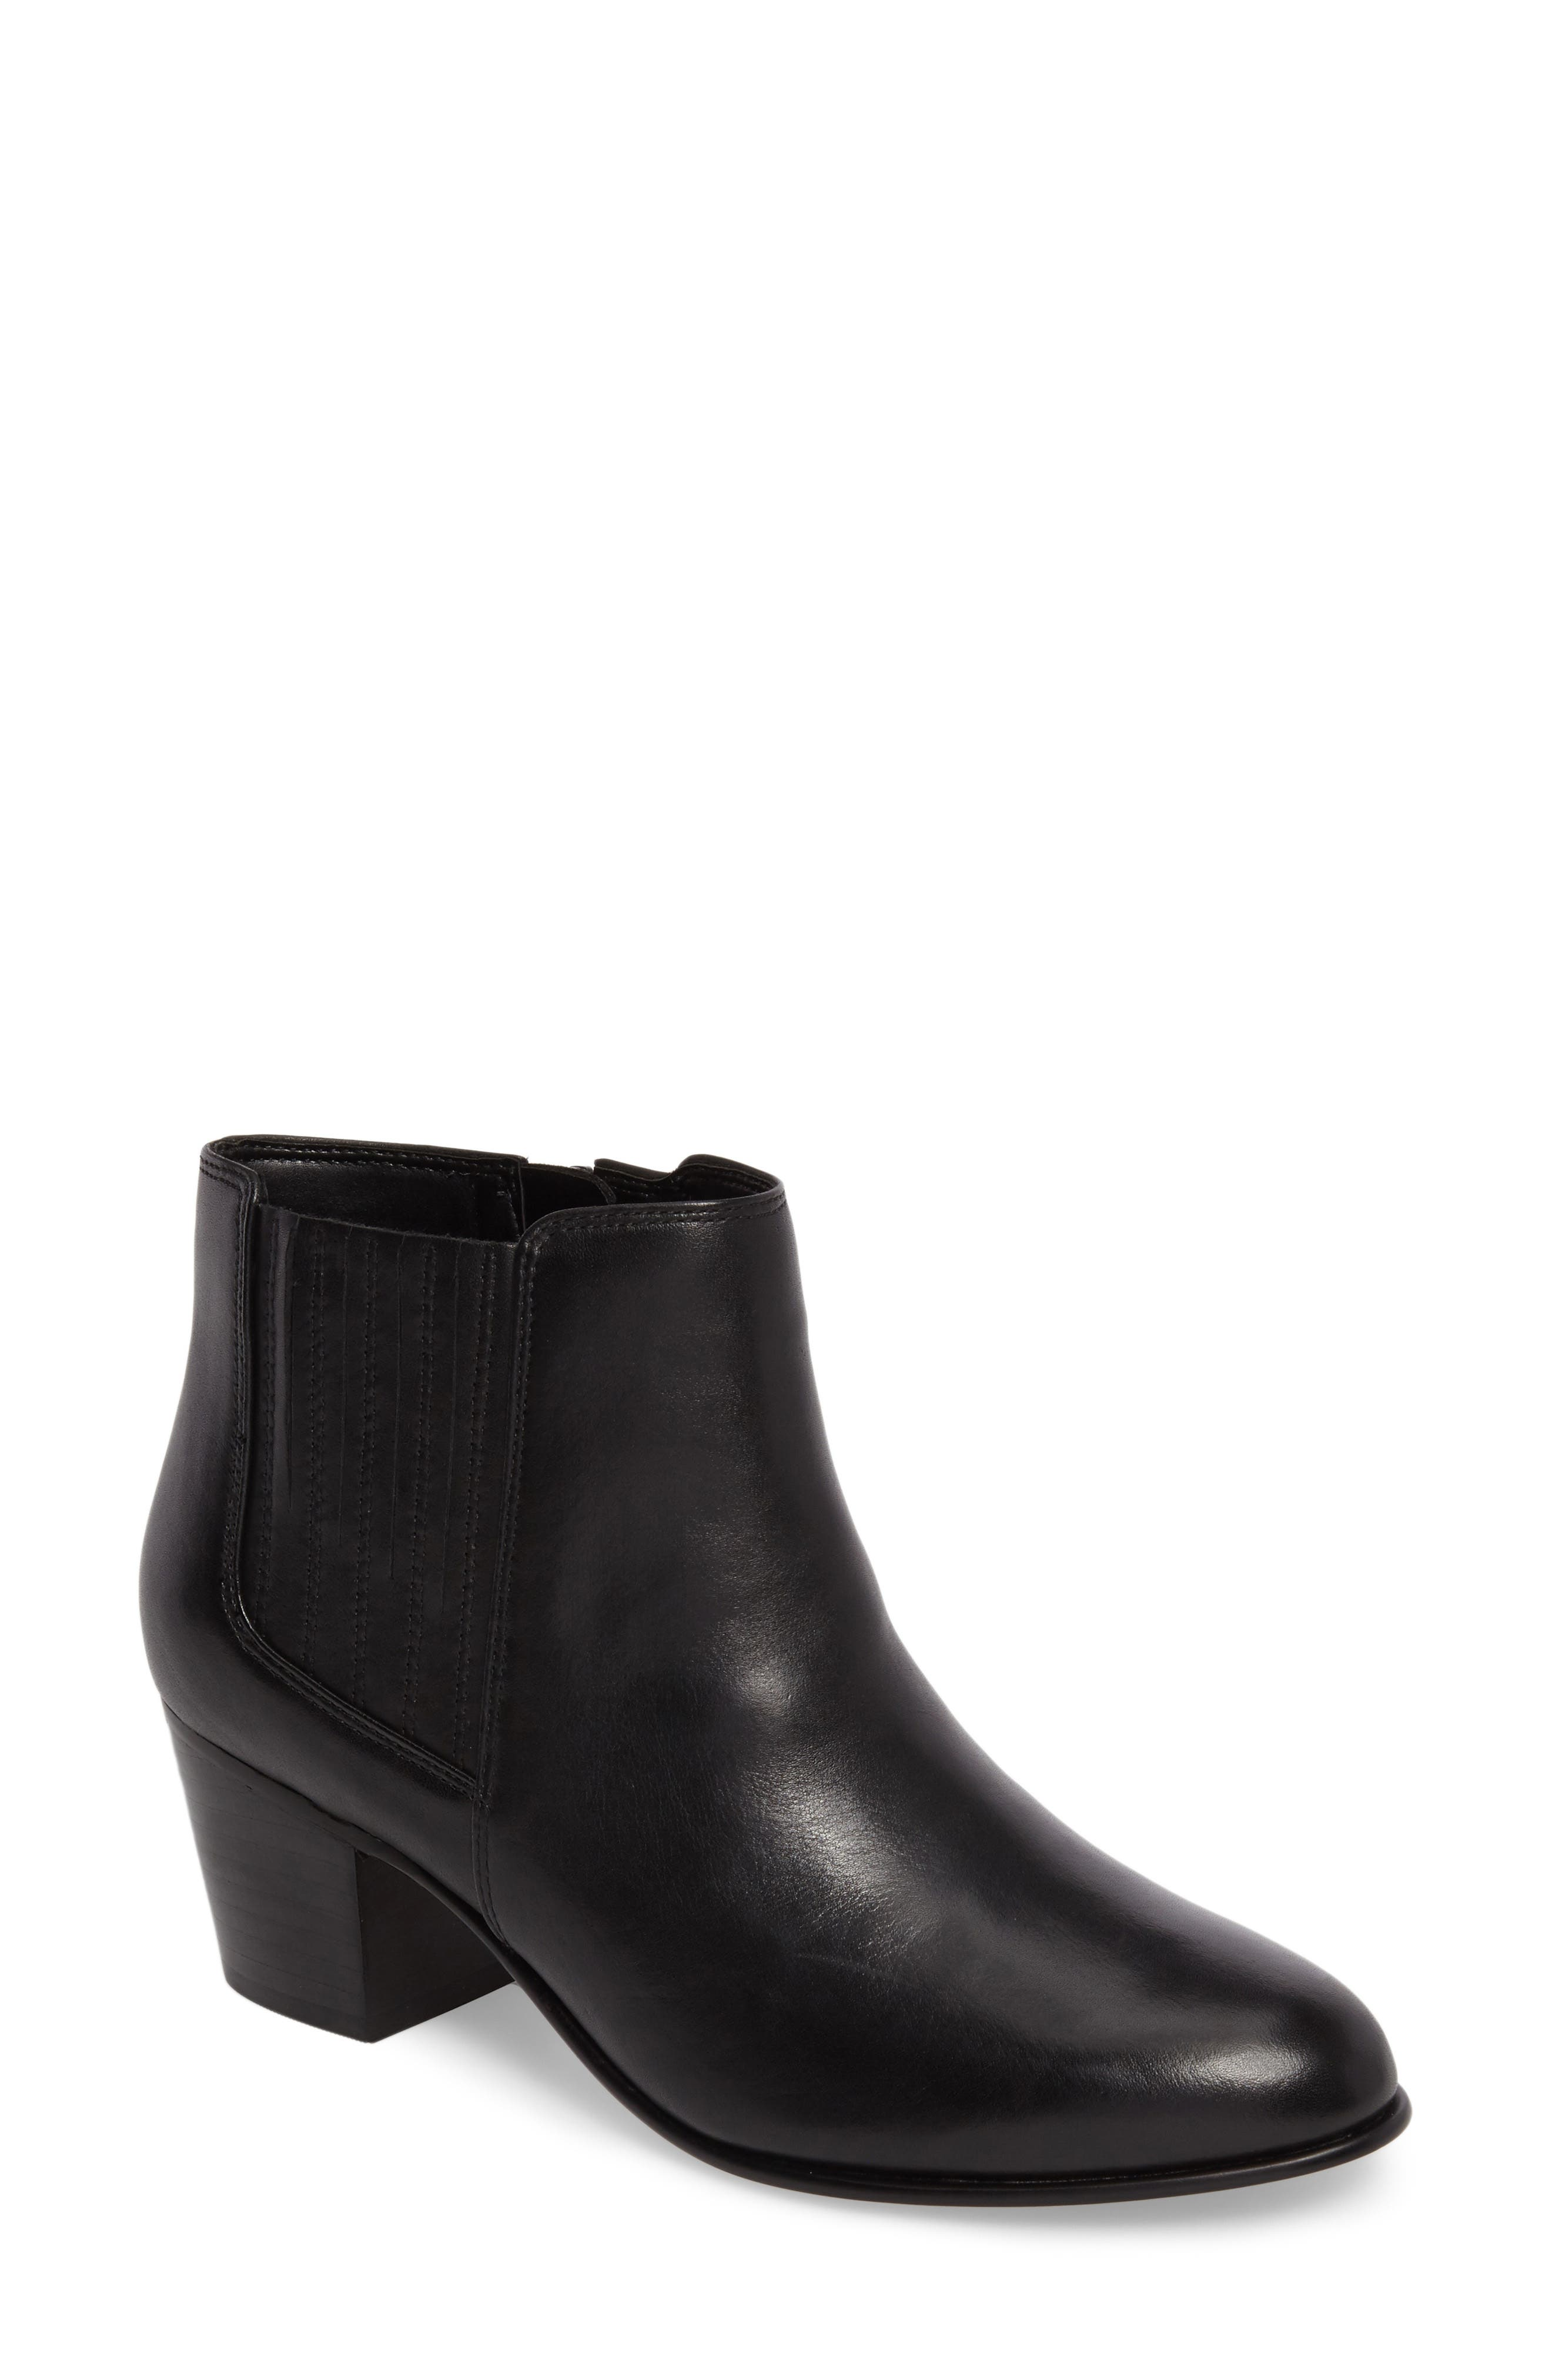 Maypearl Tulsa Bootie,                             Main thumbnail 1, color,                             Black Leather